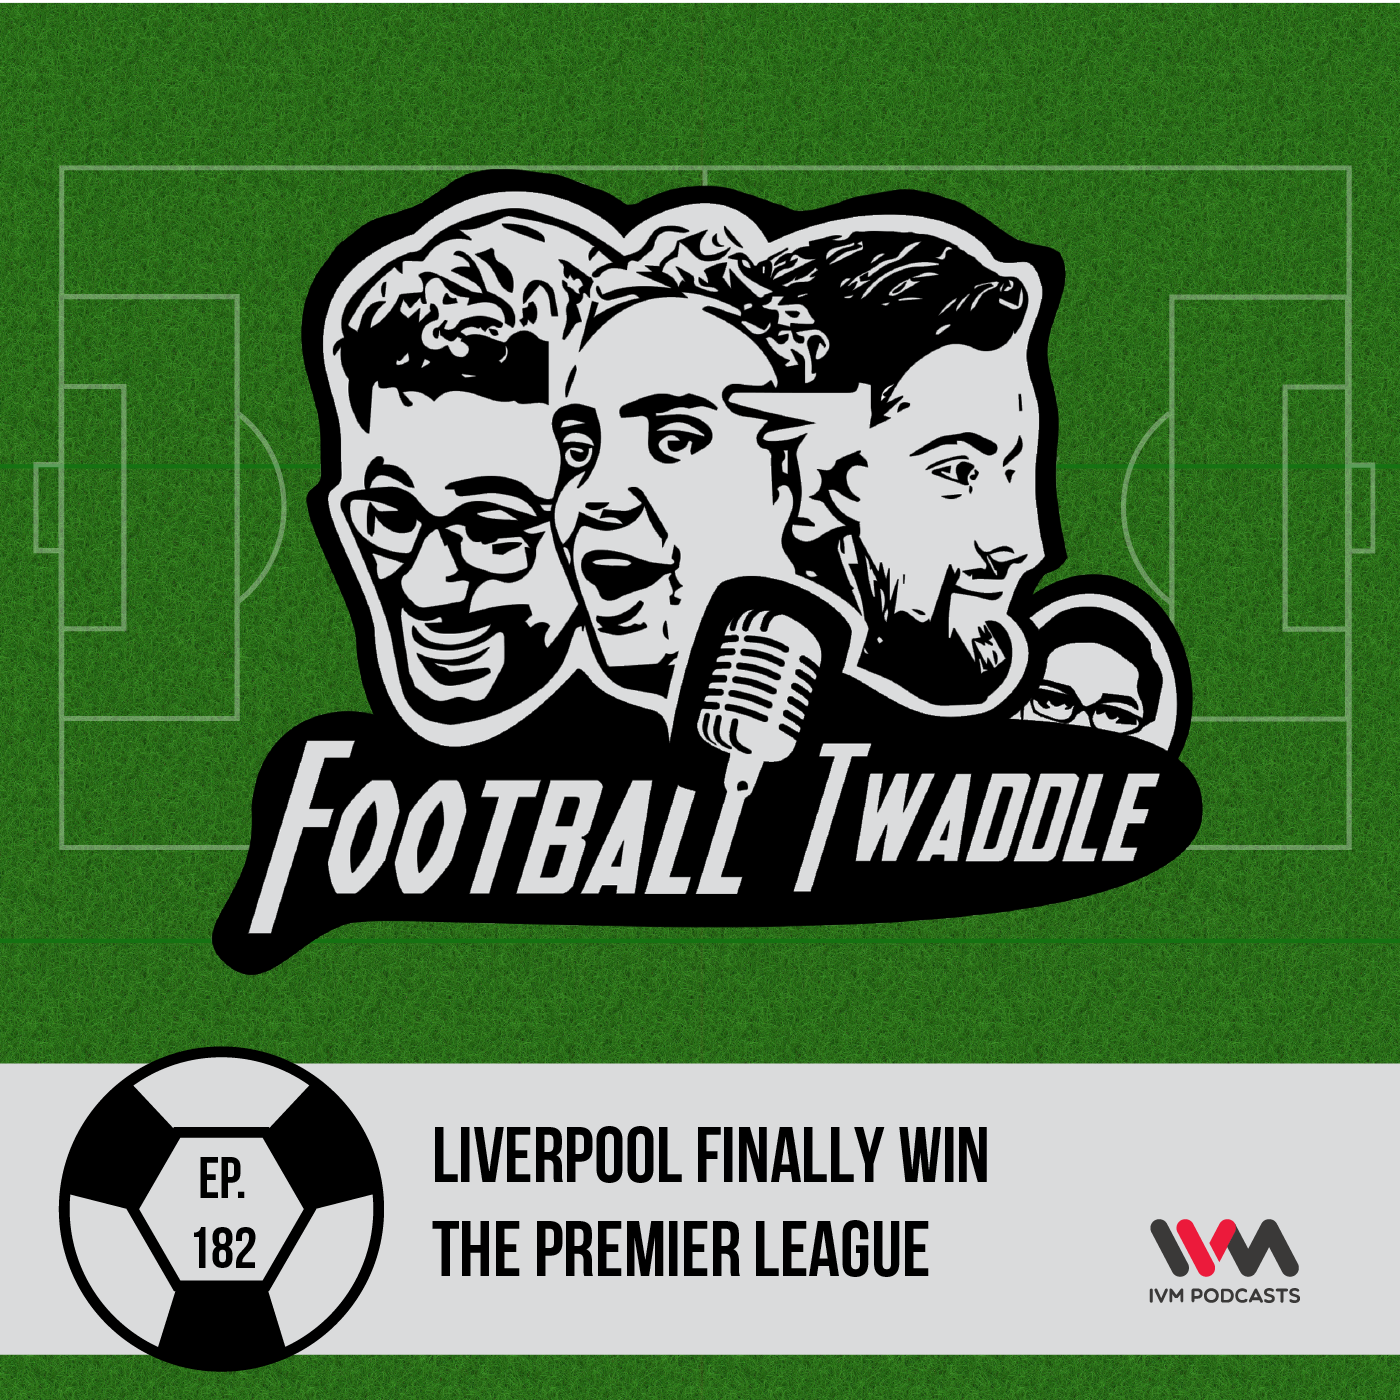 Liverpool finally win the Premier League